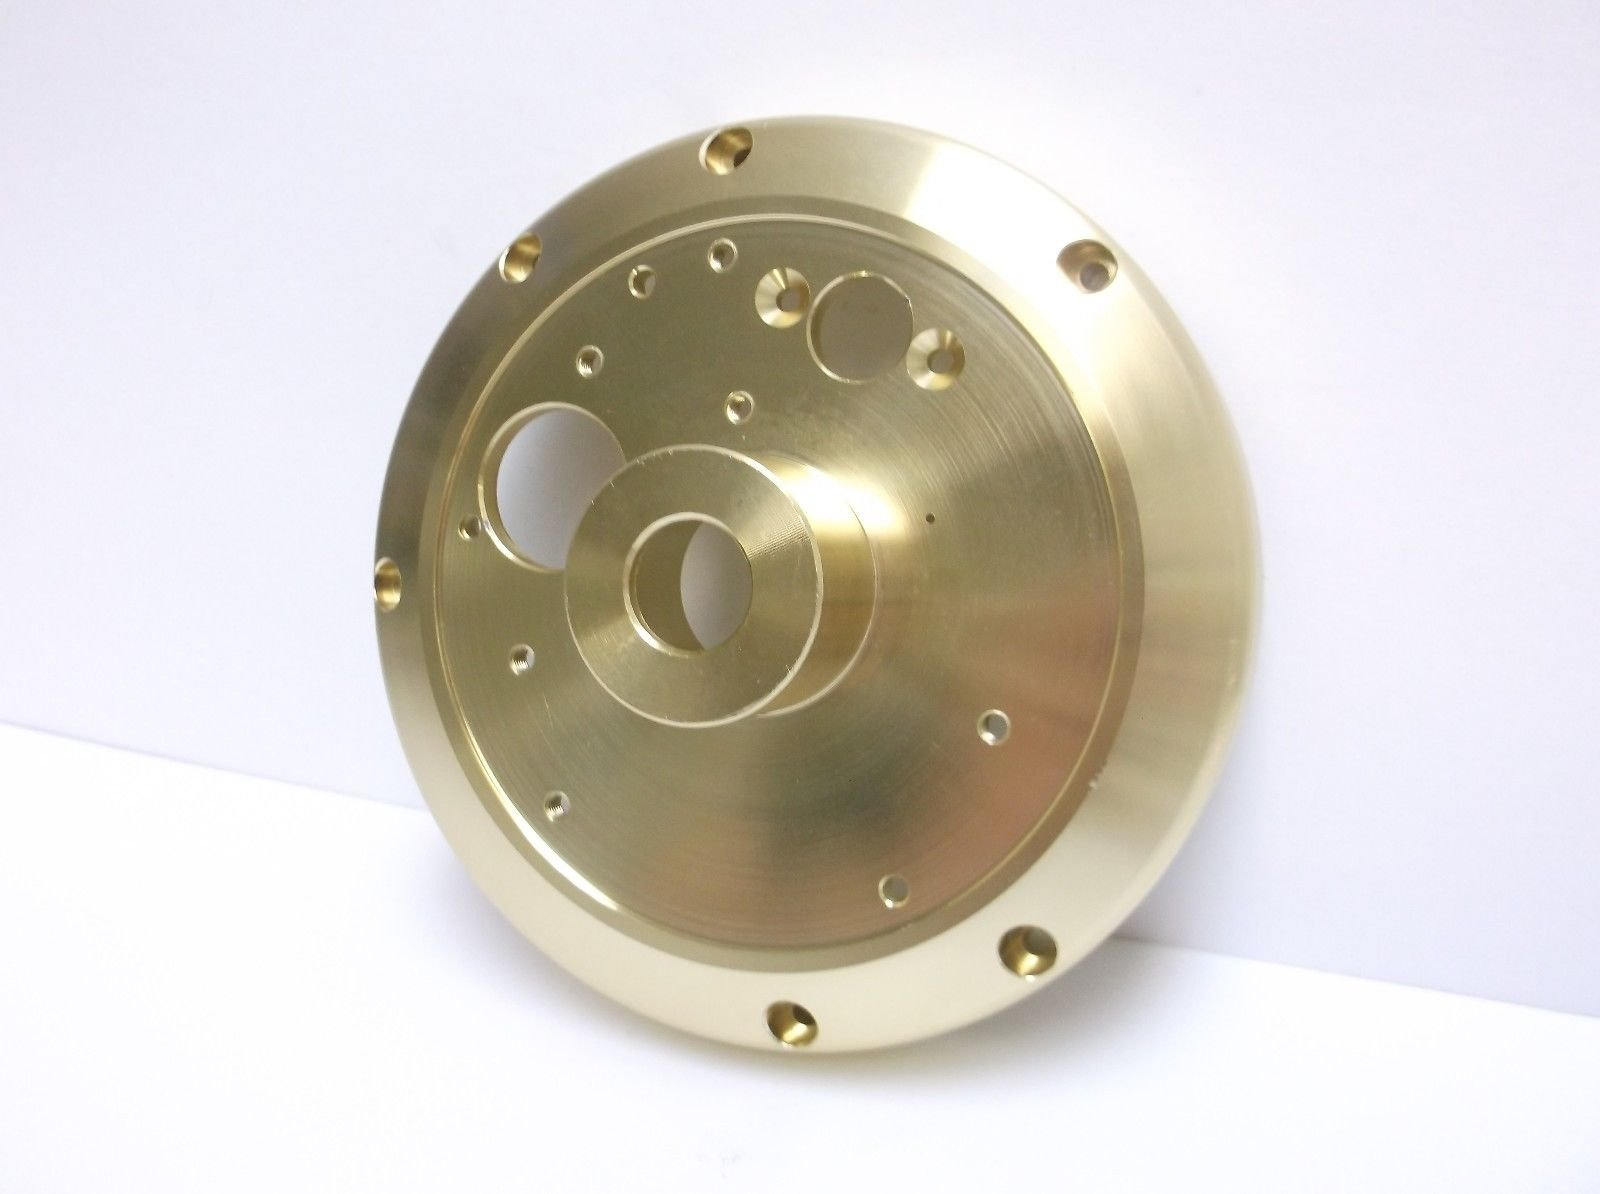 SHIMANO BIG GAME REEL PART TT0265 Tiagra 50 50W 50WLRS - Right Side Plate (A) #D